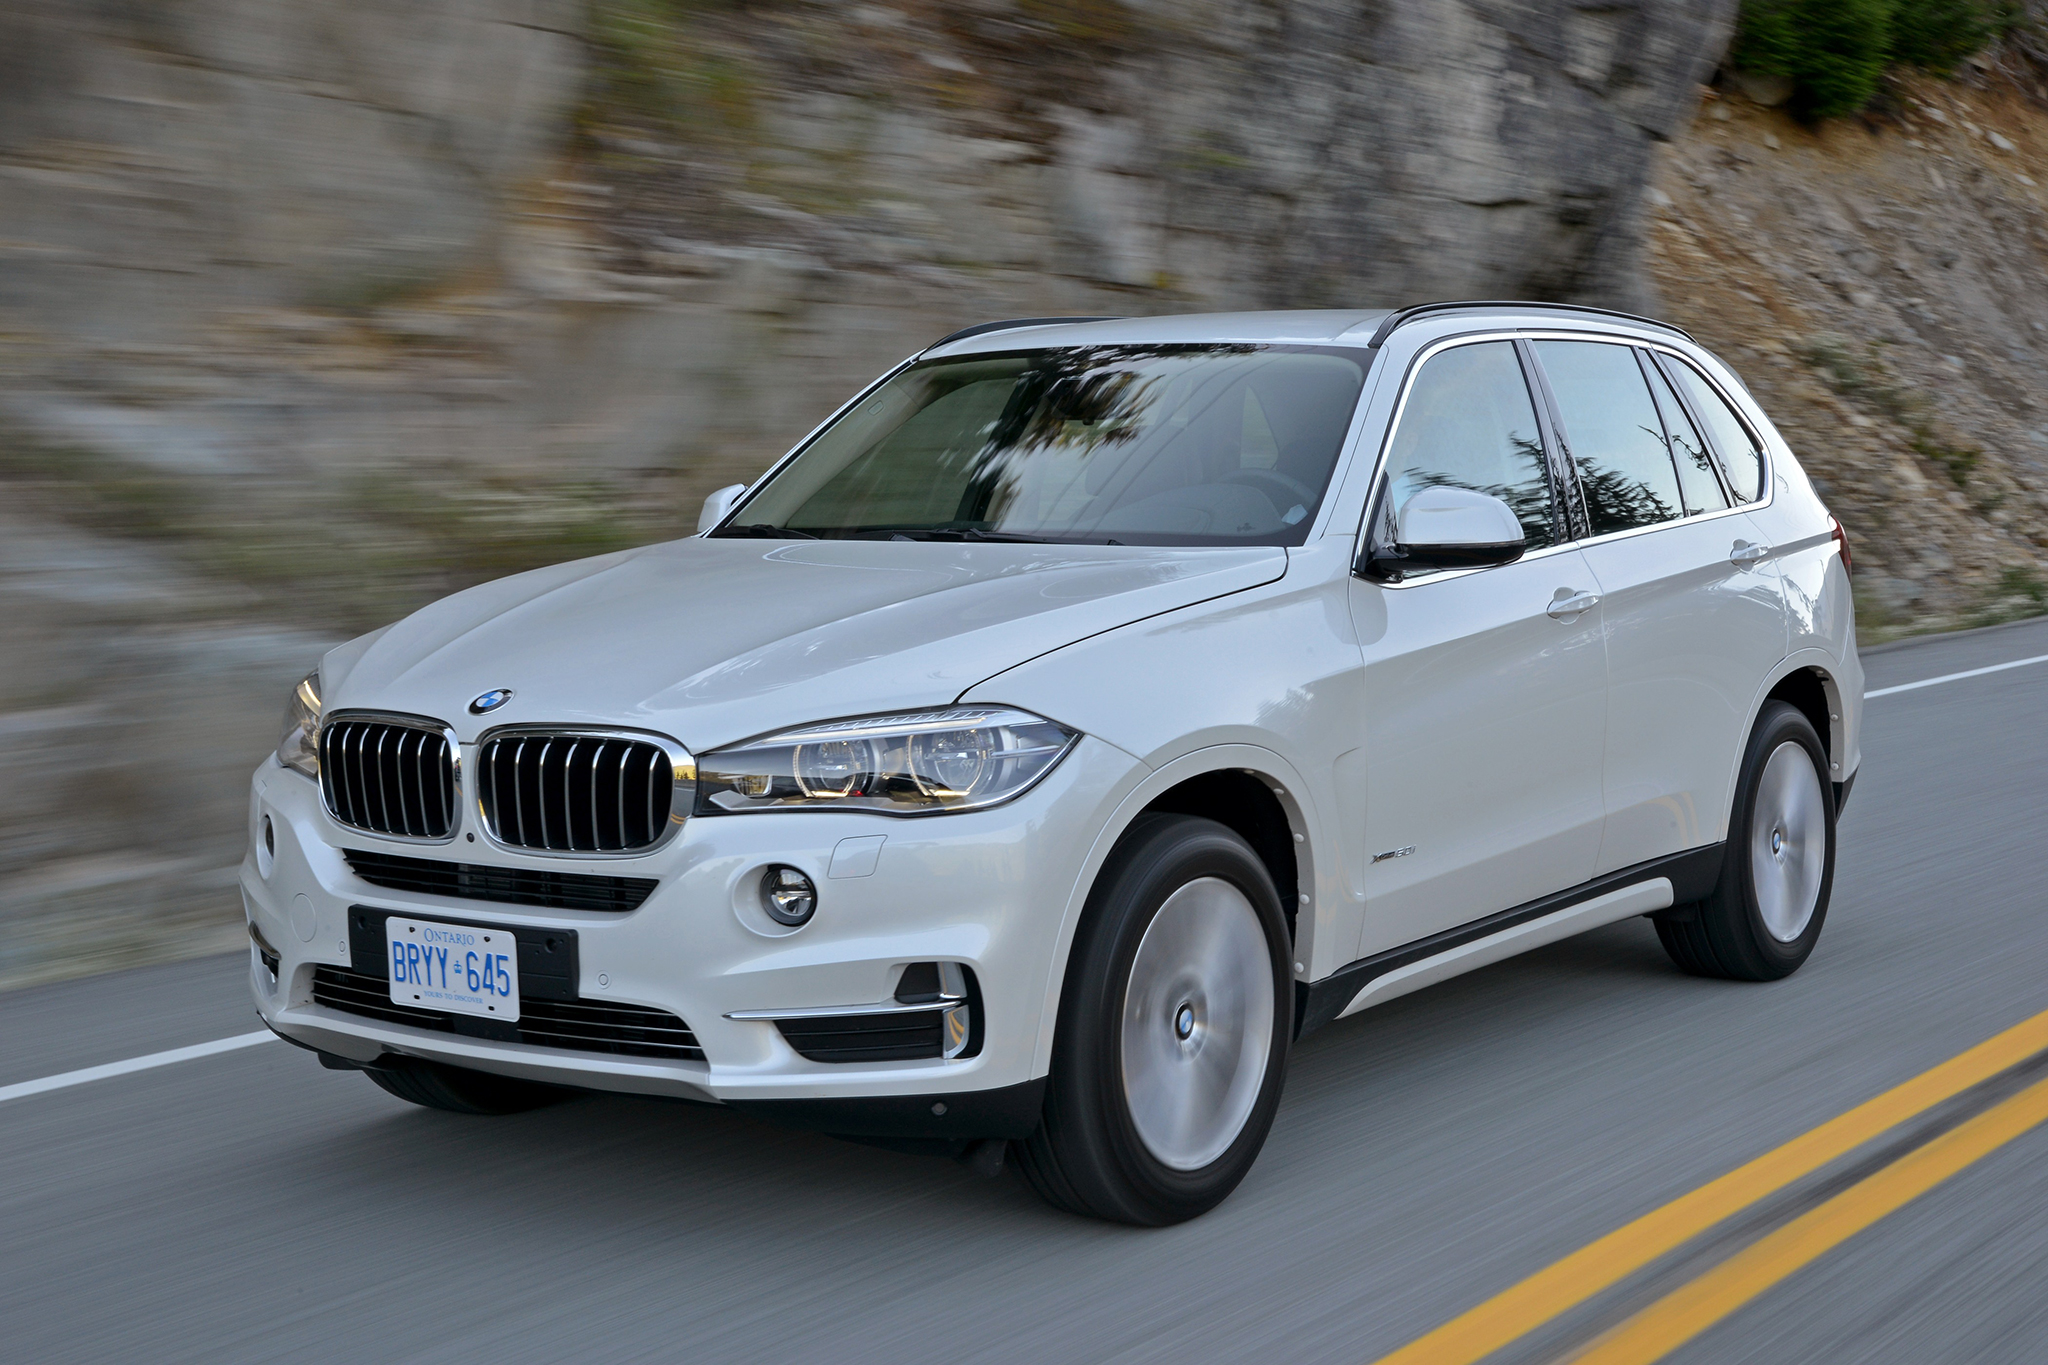 Recall: 2014 BMW X5 Soft Close Automatic Door Feature